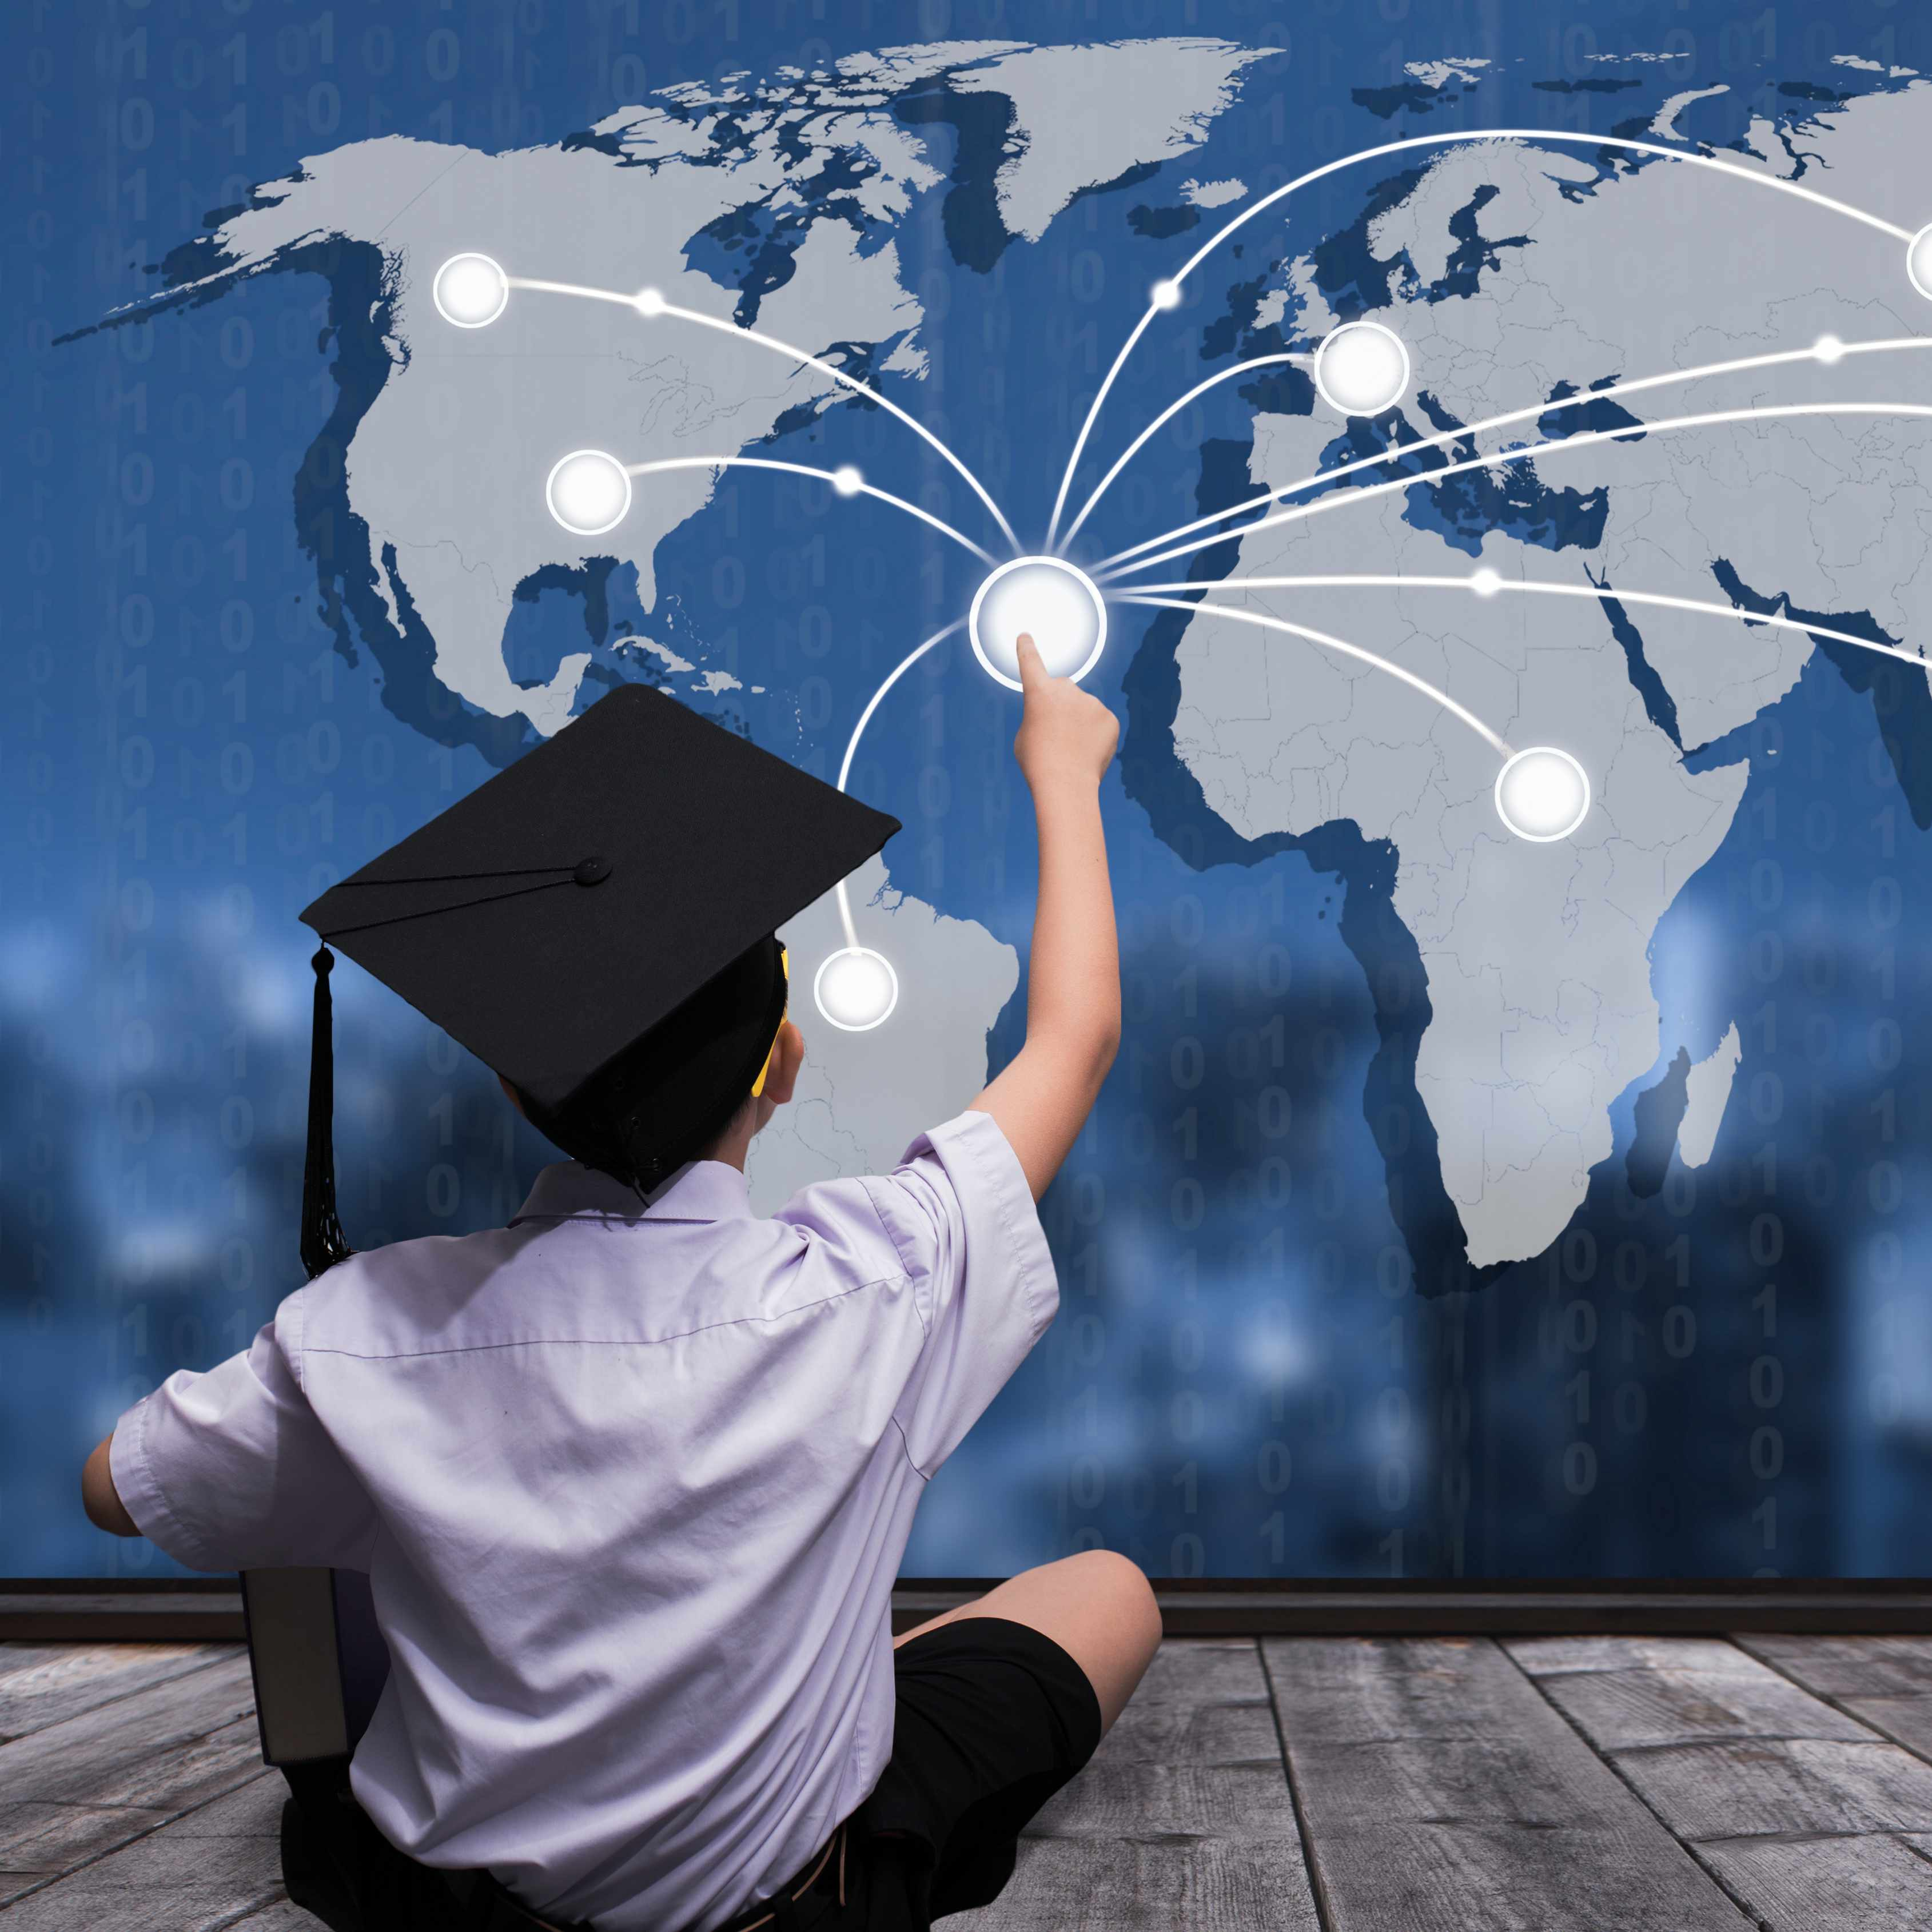 a young boy with a graduation cap sitting in front of a global map